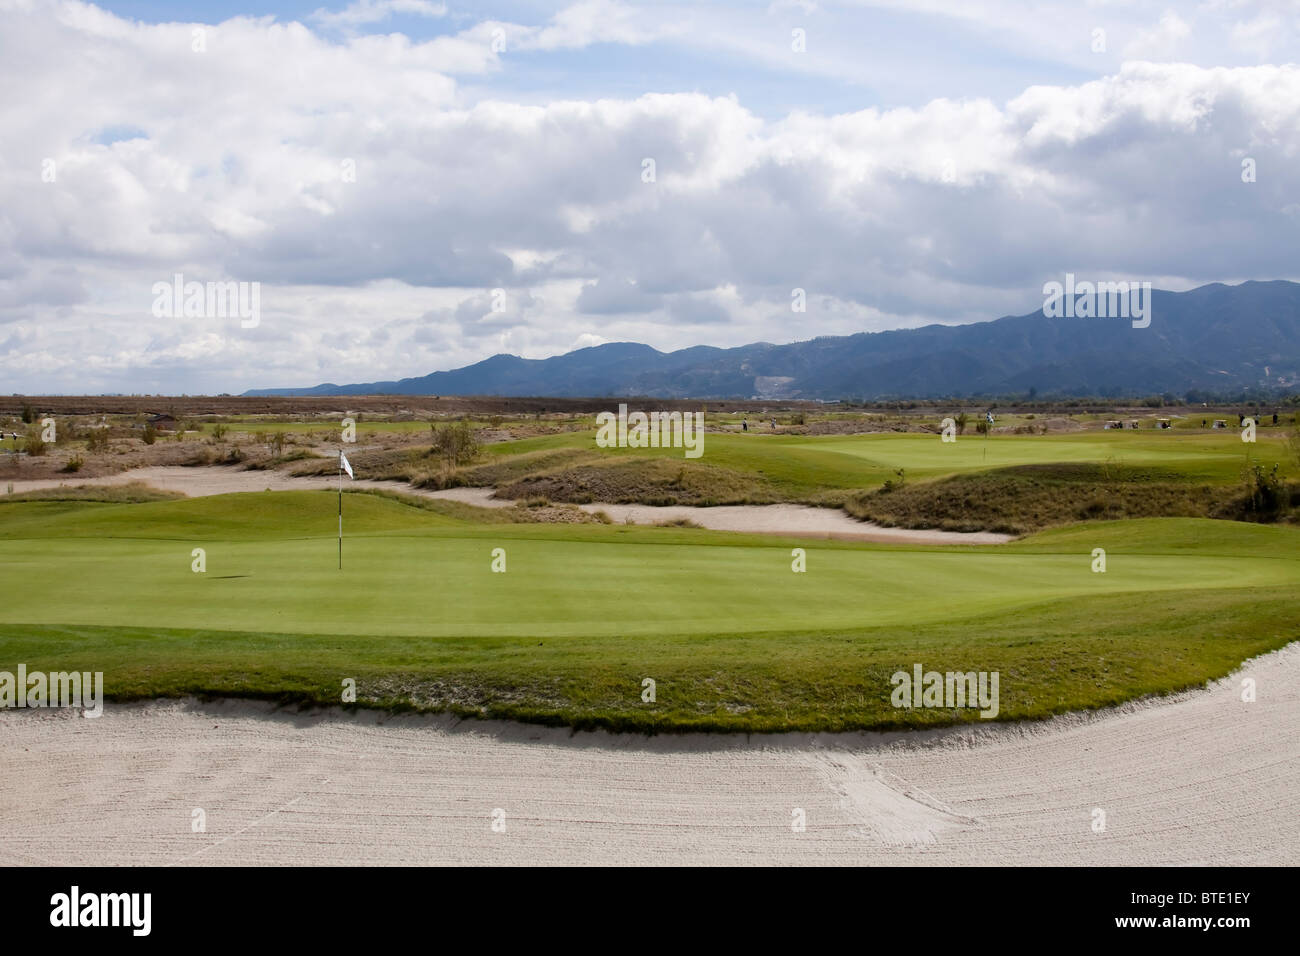 links golf course green in california - Stock Image